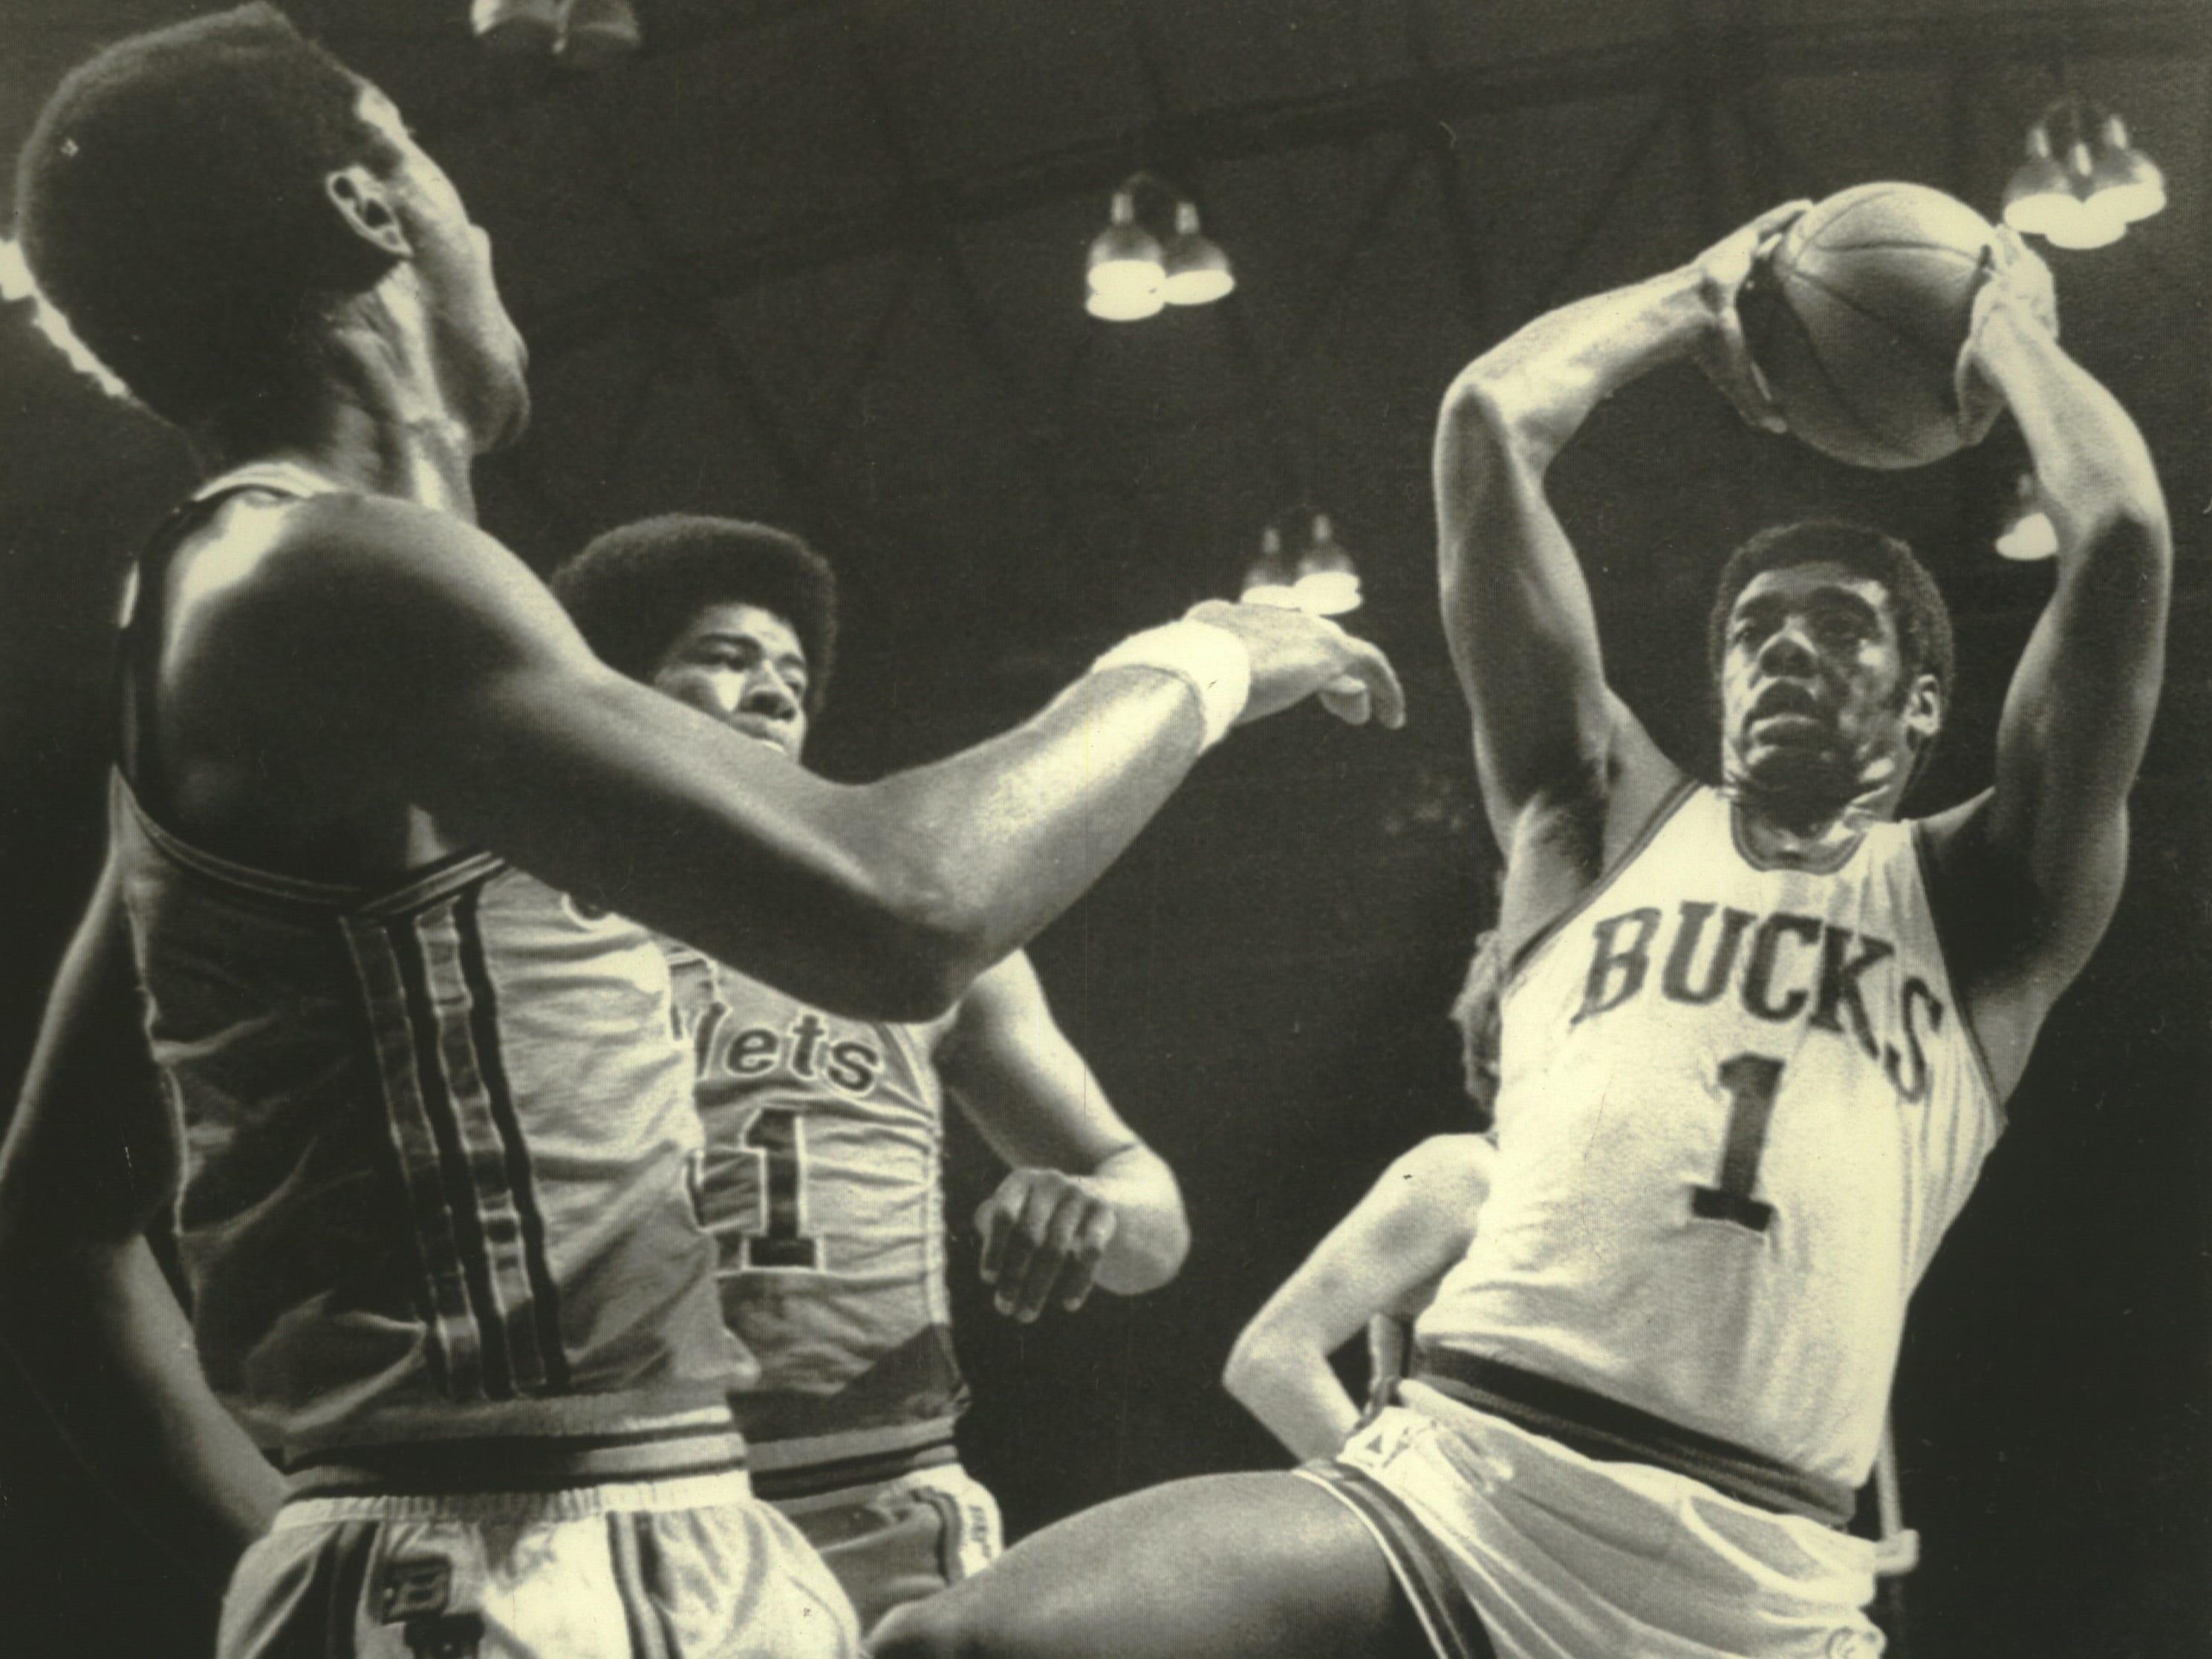 1971: Oscar Robertson (right) pulls down a rebound for the Milwaukee Bucks during Game 1 of the NBA finals against the Baltimore Bullets on April 21, 1971. Looking on are the Bullets' Fred Carter (left) and Wes Unseld. The Bucks beat the Bullets in four straight to win their first NBA championship.